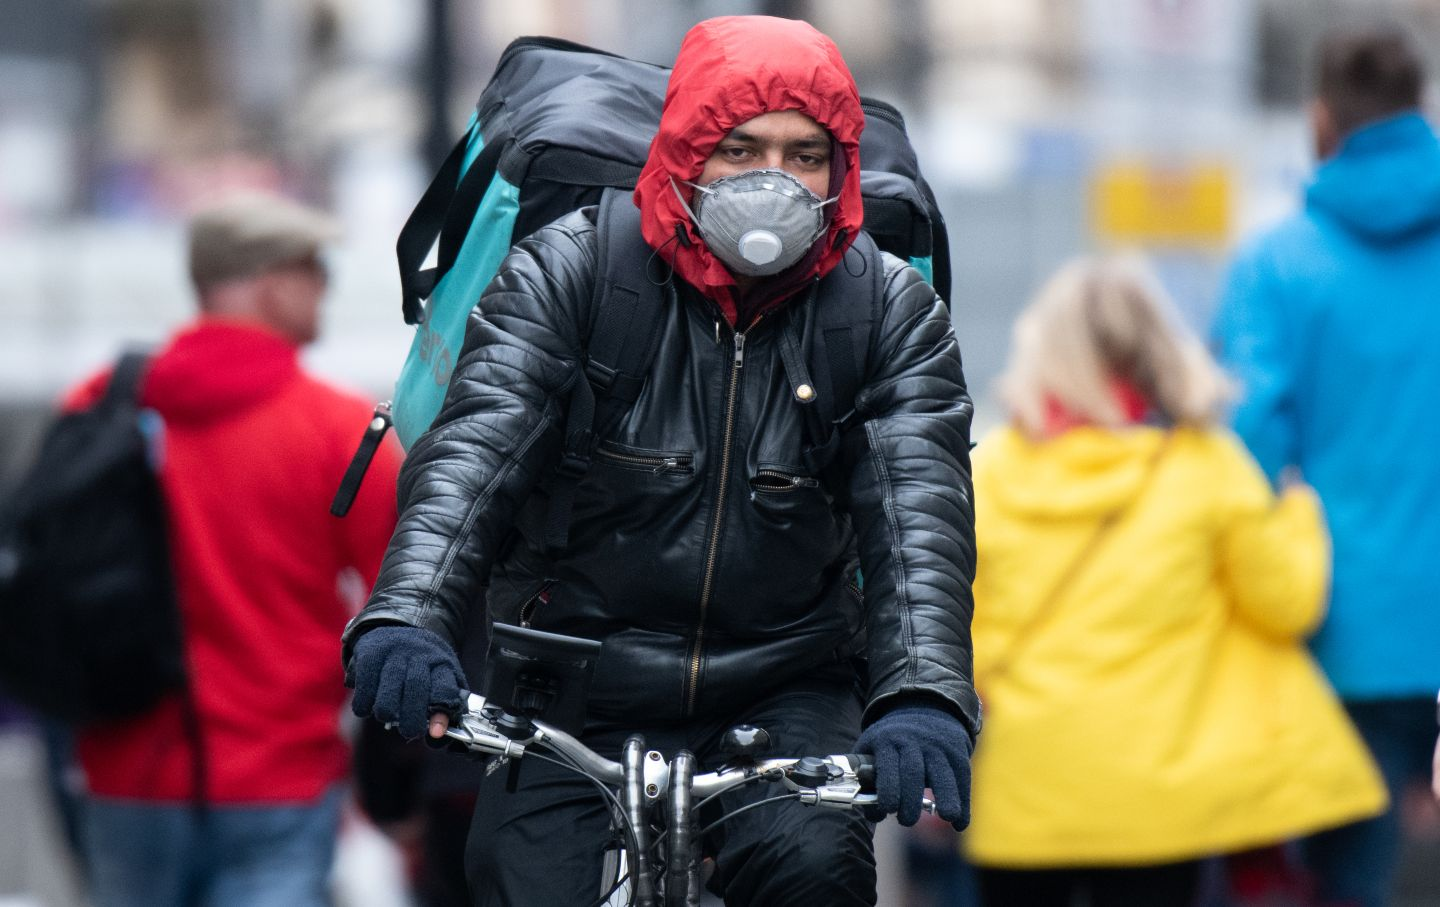 Food service worker biking with a mask